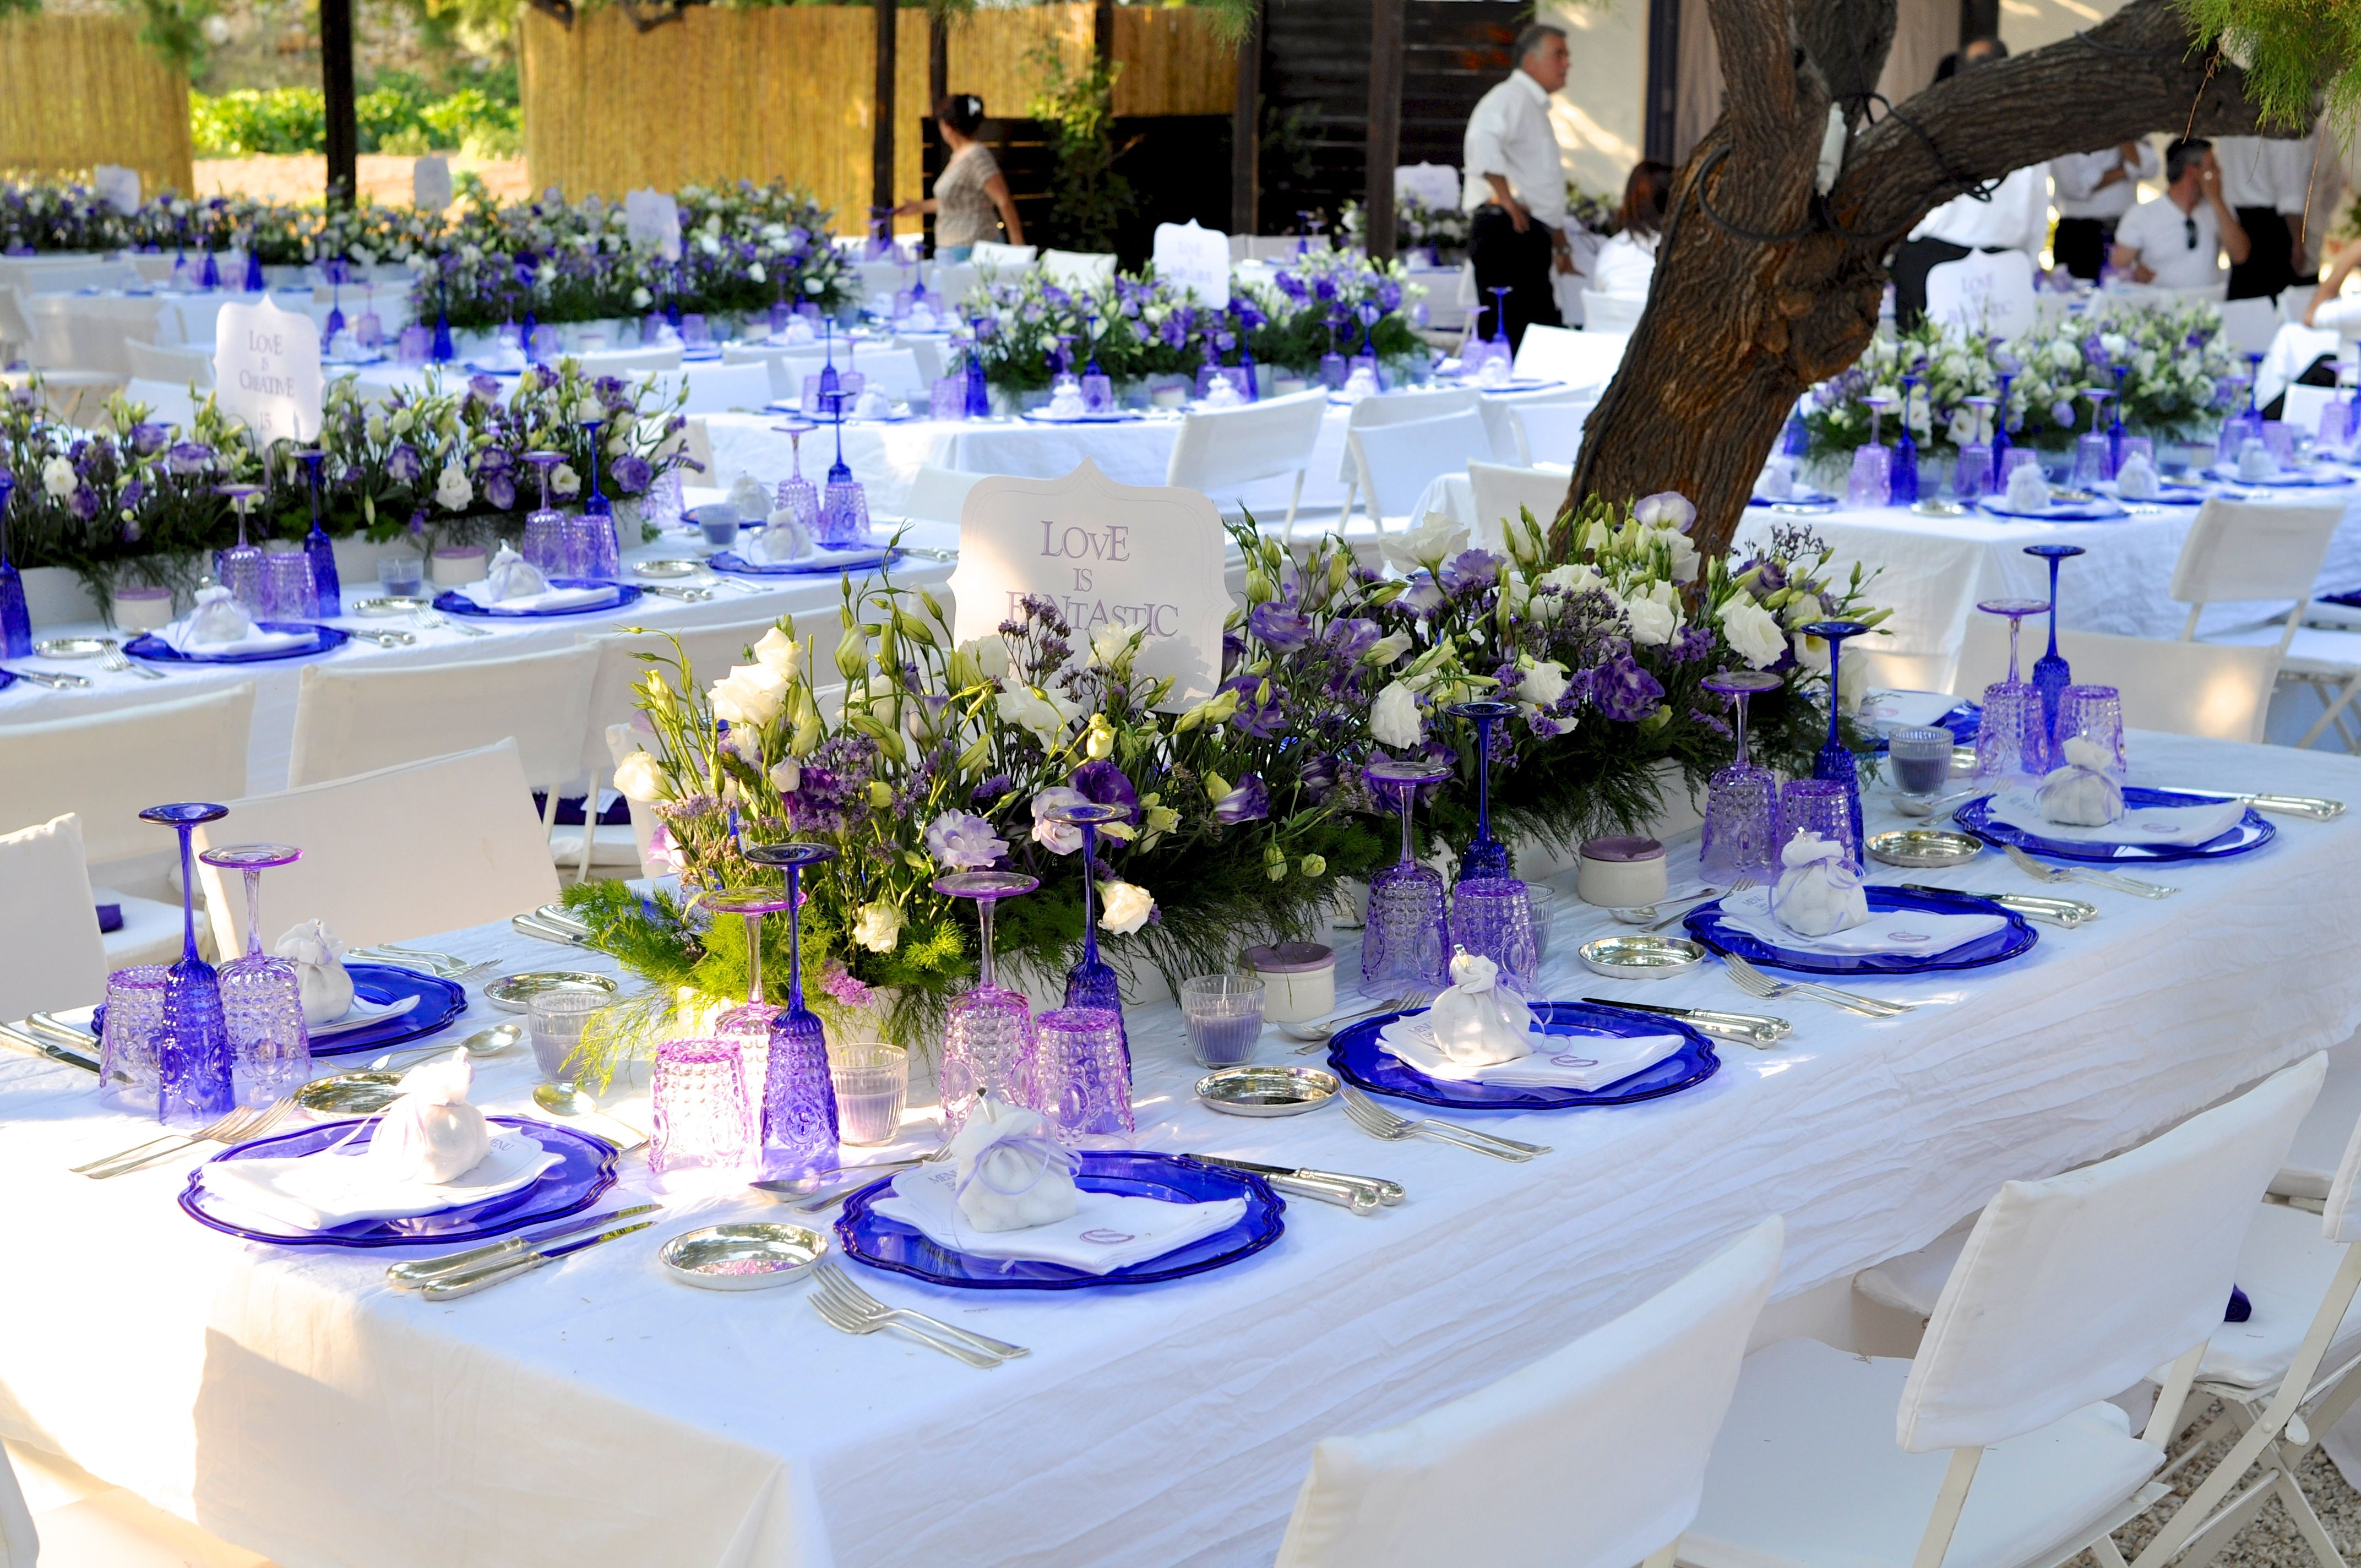 A MELI Parties decorated spring event!